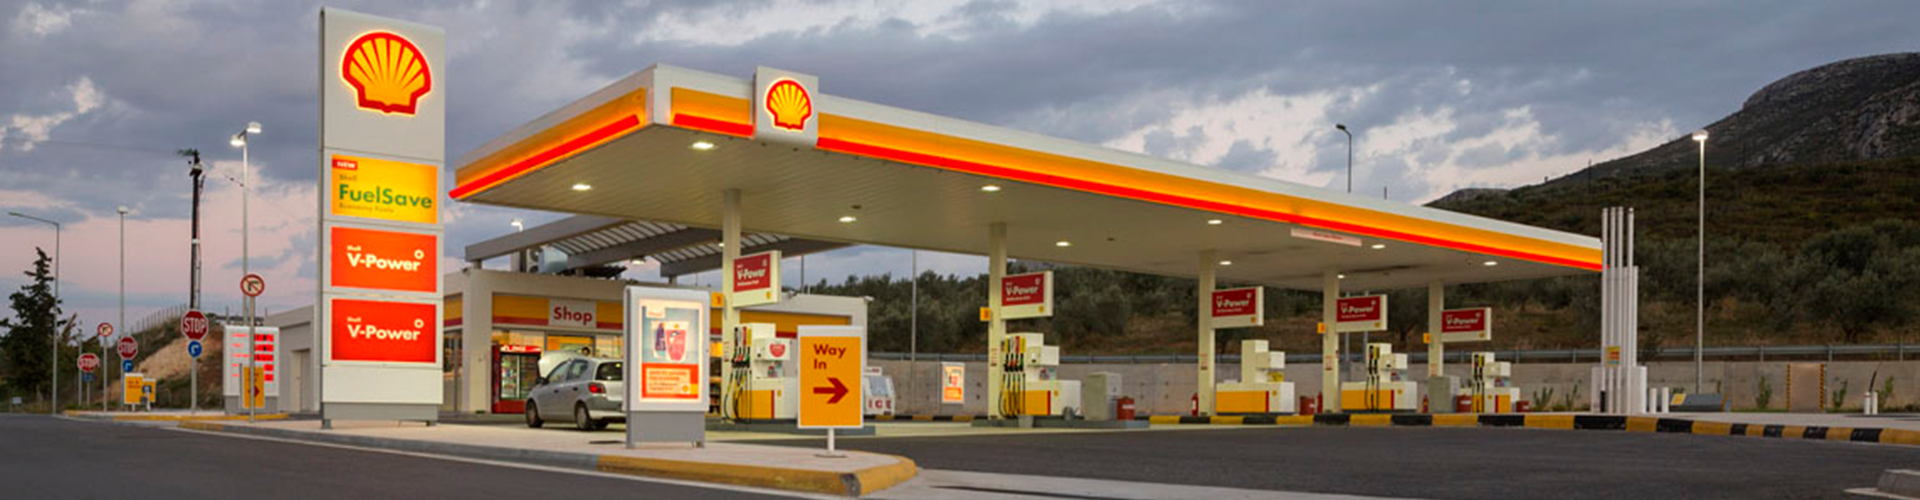 Shell retail stations